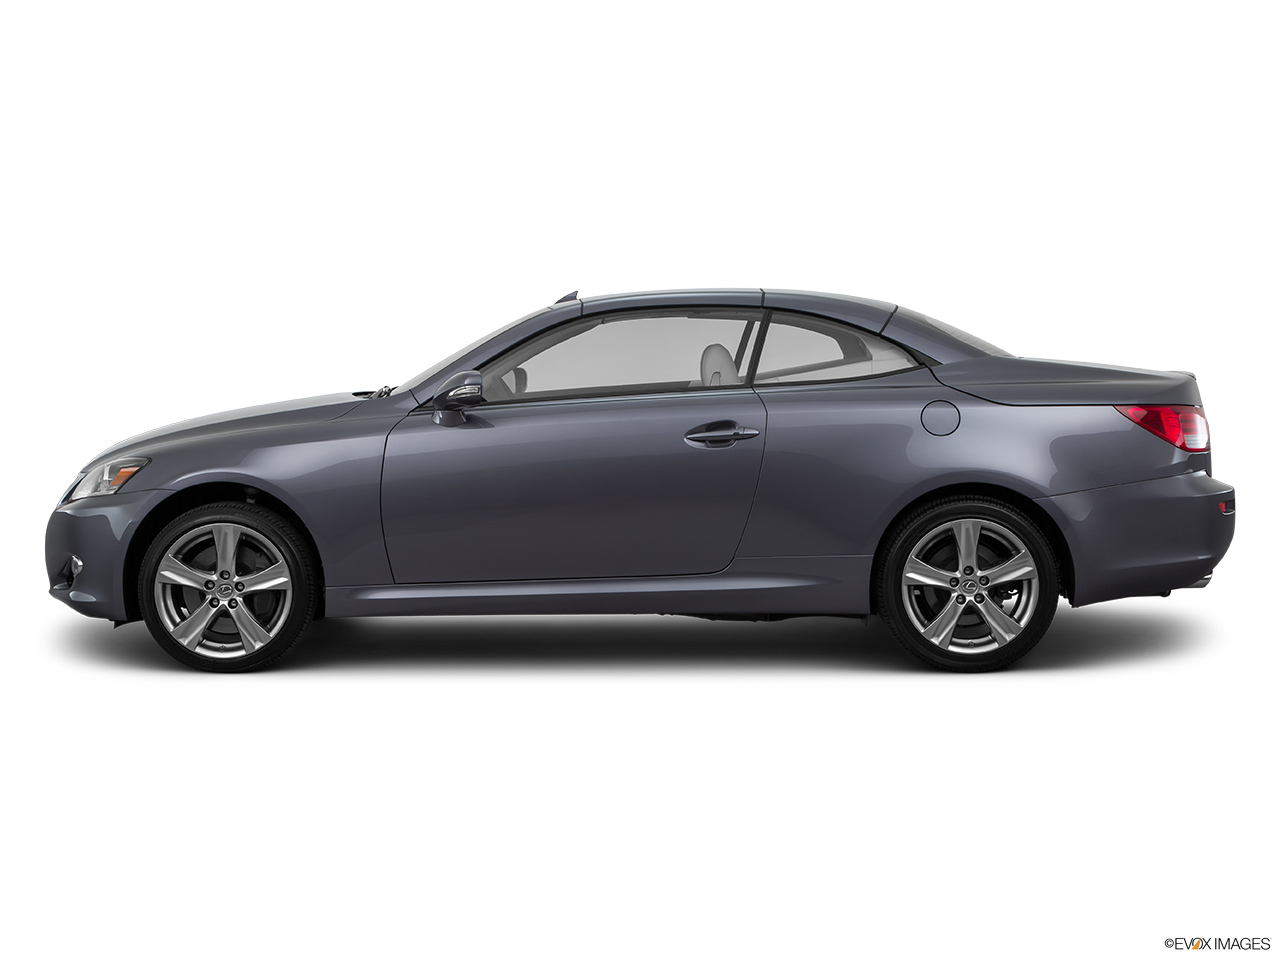 2015 Lexus IS C IS 350 Drivers side profile, convertible top up (convertibles only).